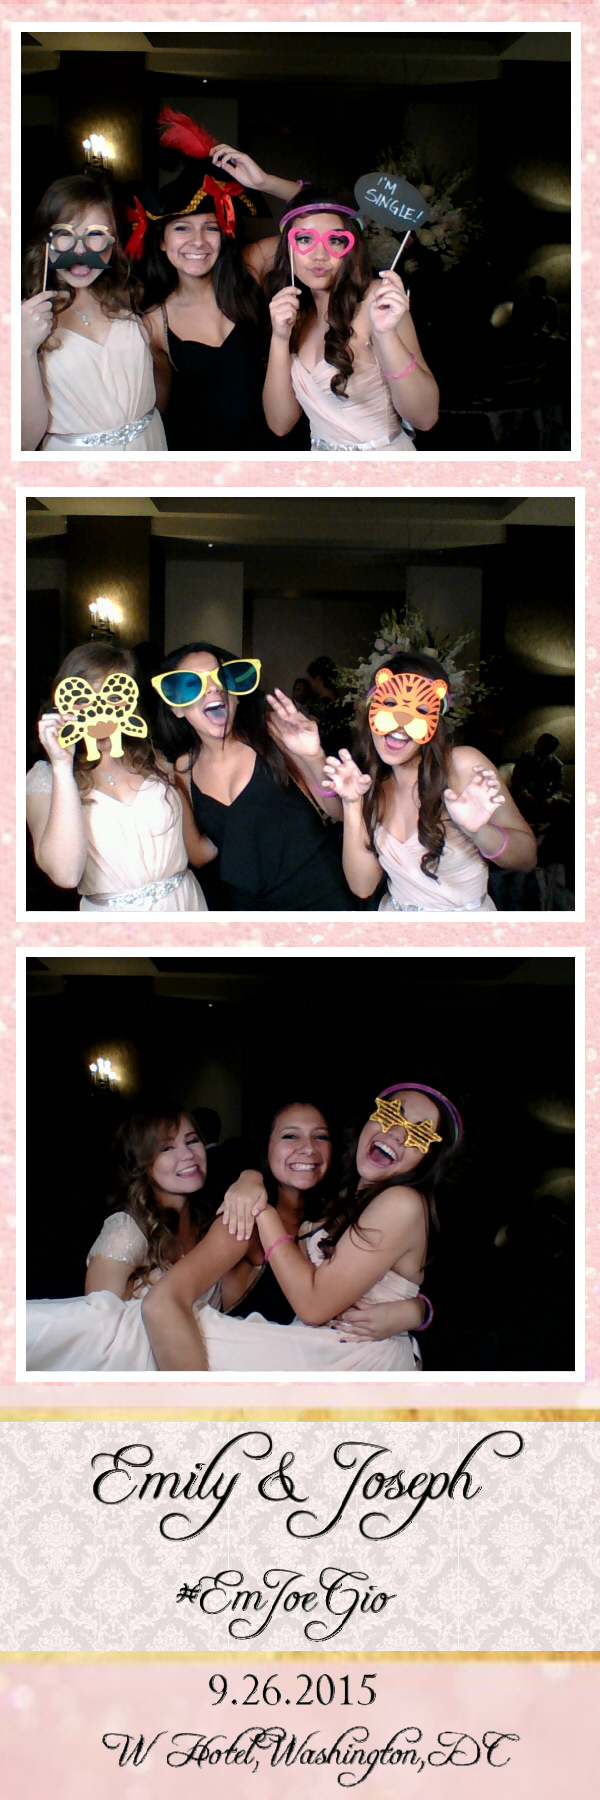 Guest House Events Photo Booth E&J (50).jpg